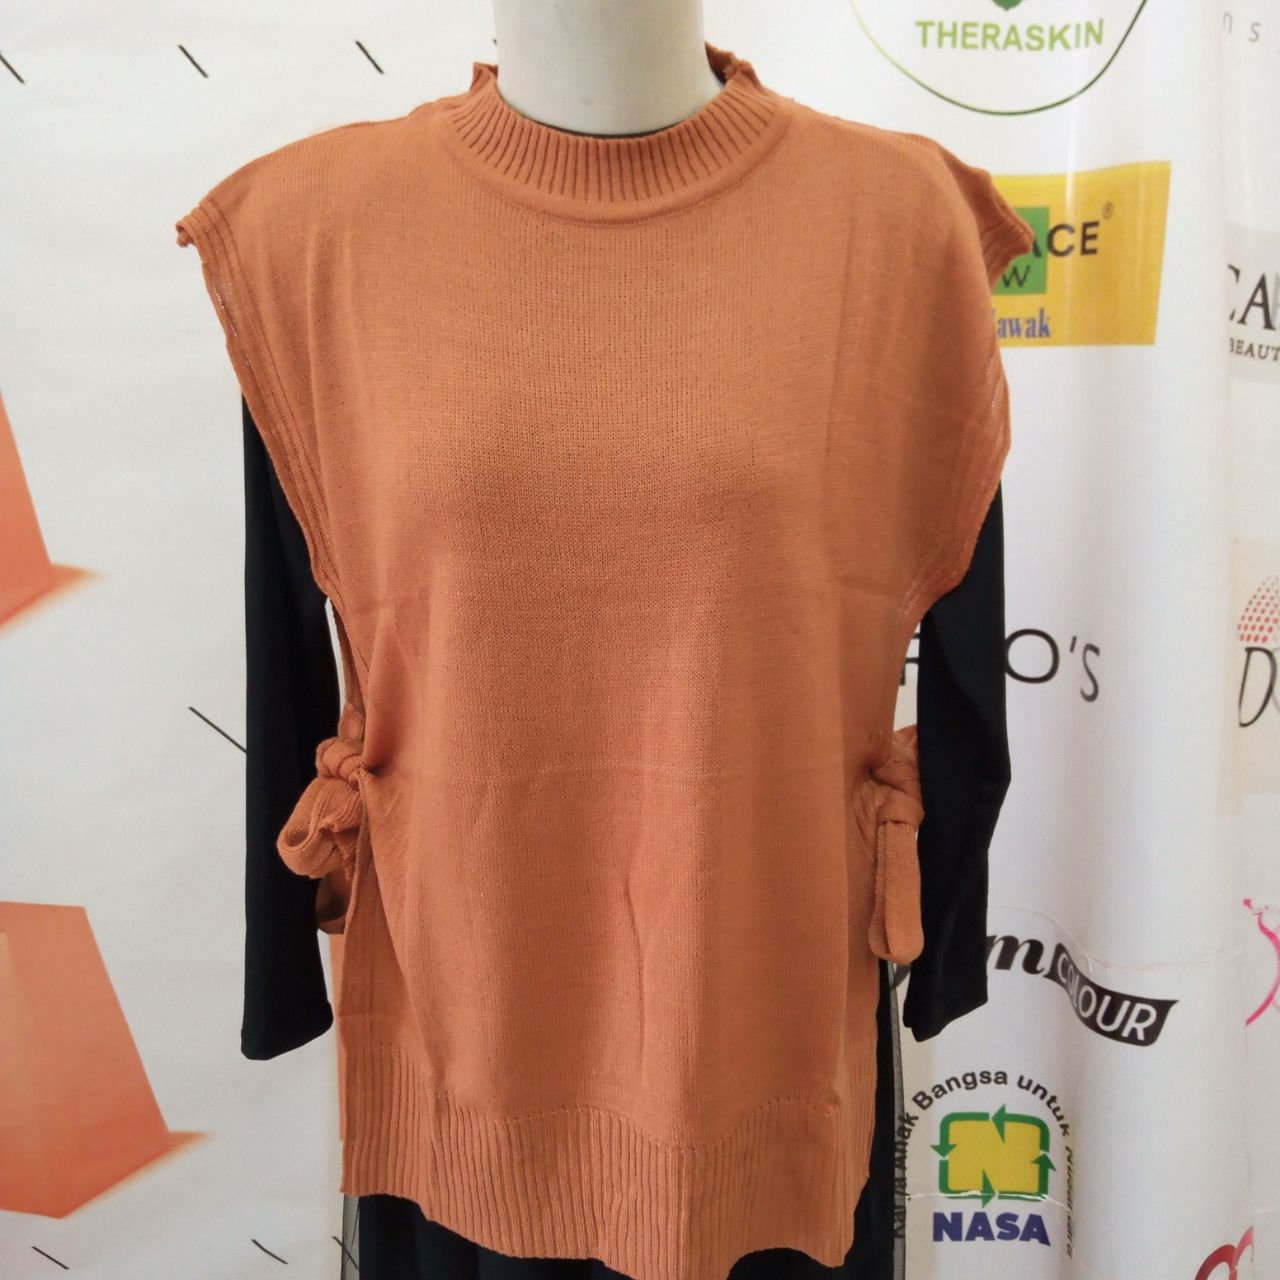 ini adalah Rajut Vest Andin Coral, size: L, material: knit, color: Chocholate-coral, brand: vestknittindonesia, age_group: all ages, gender: female